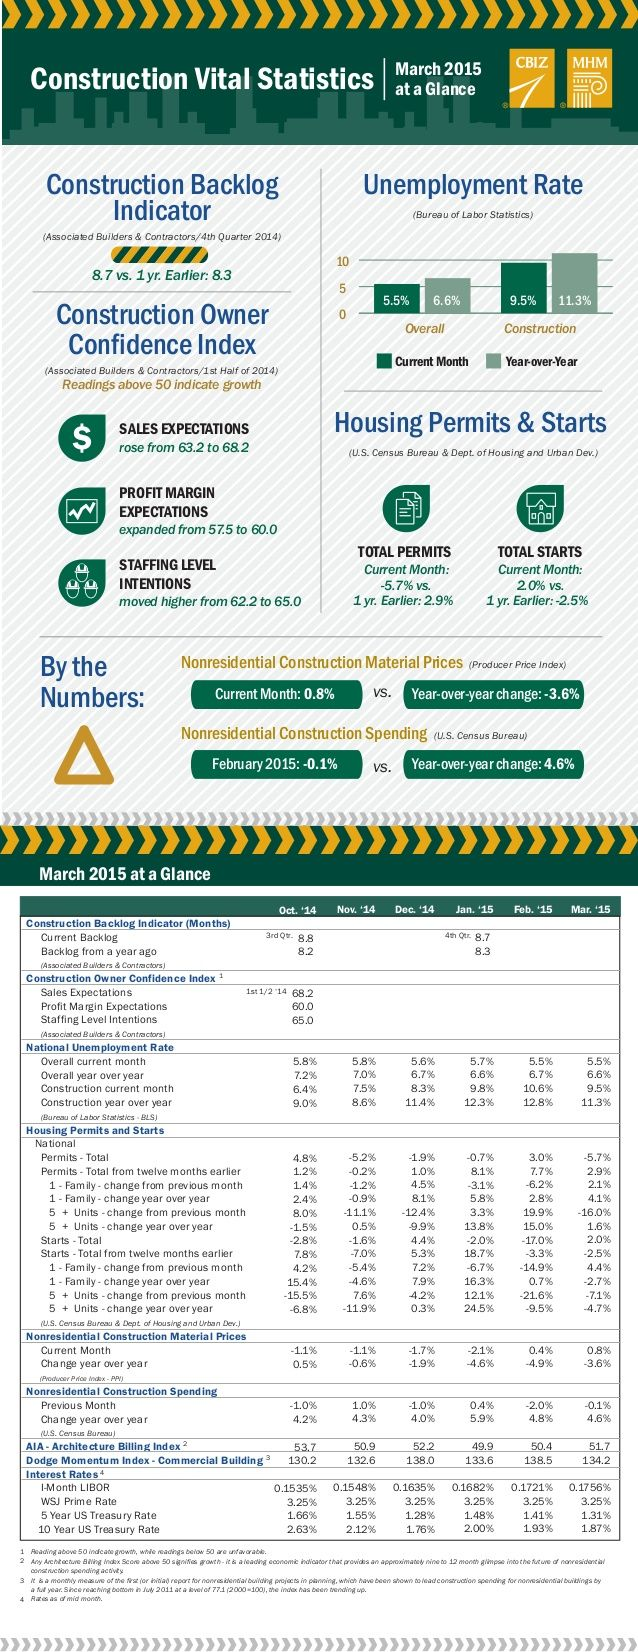 The March 2015 Construction Vital Statistics provide construction industry unemployment rates, as well as information about permits, starts, prices, spending, interest rates and more.